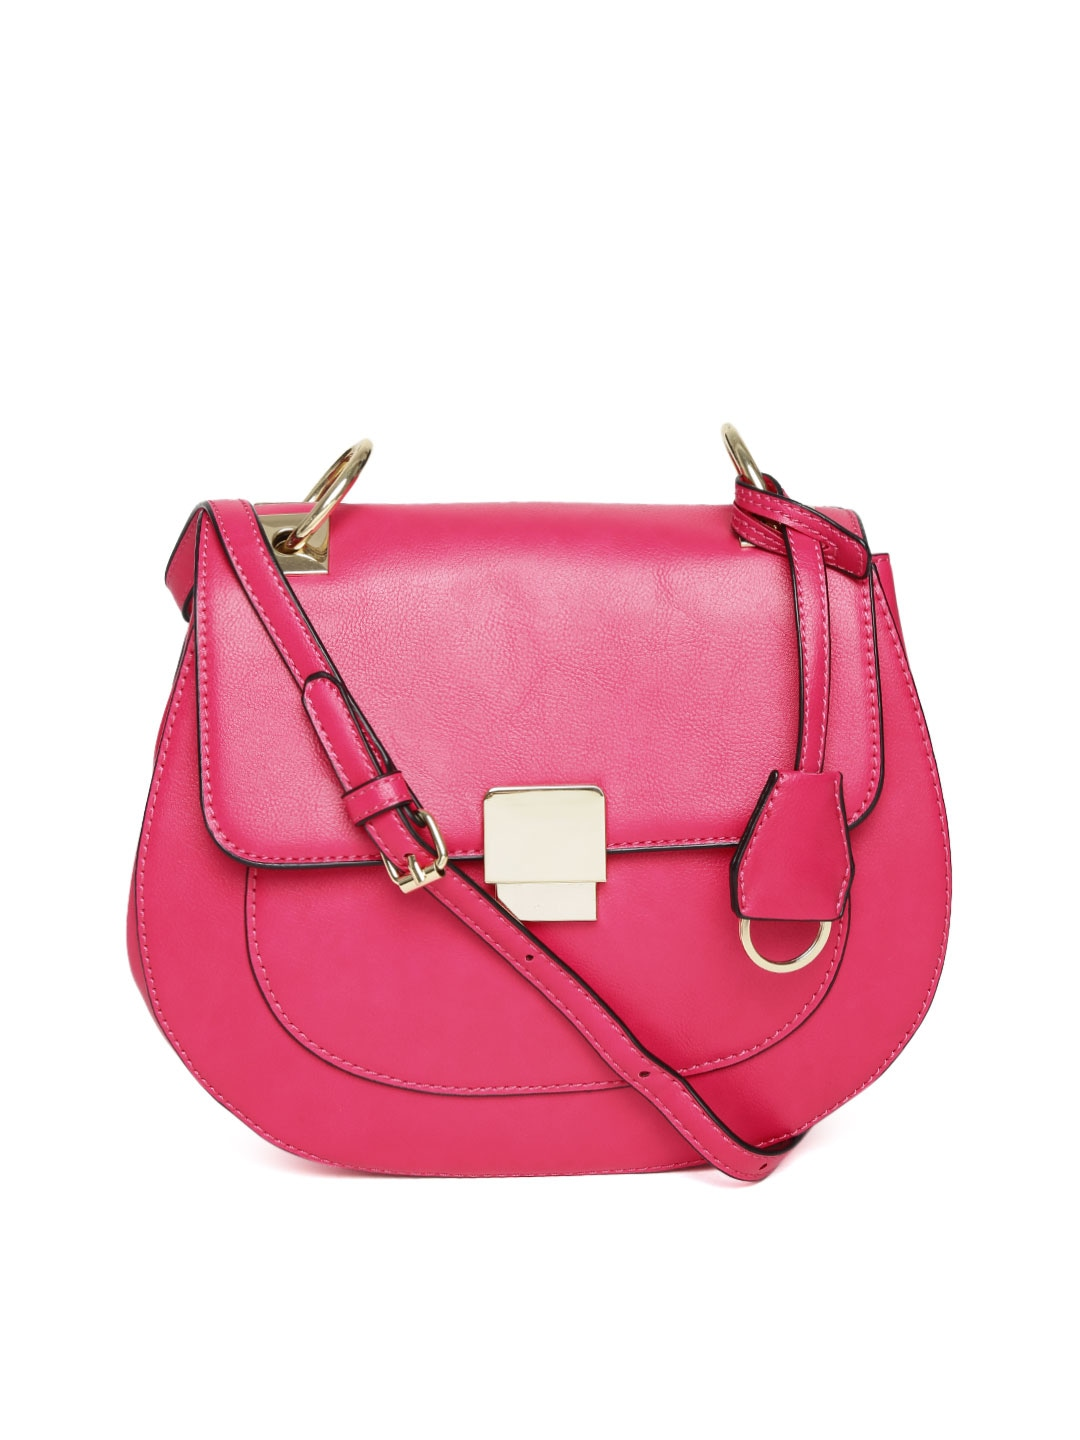 Buy ALDO Pink Sling Bag - Handbags for Women | Myntra